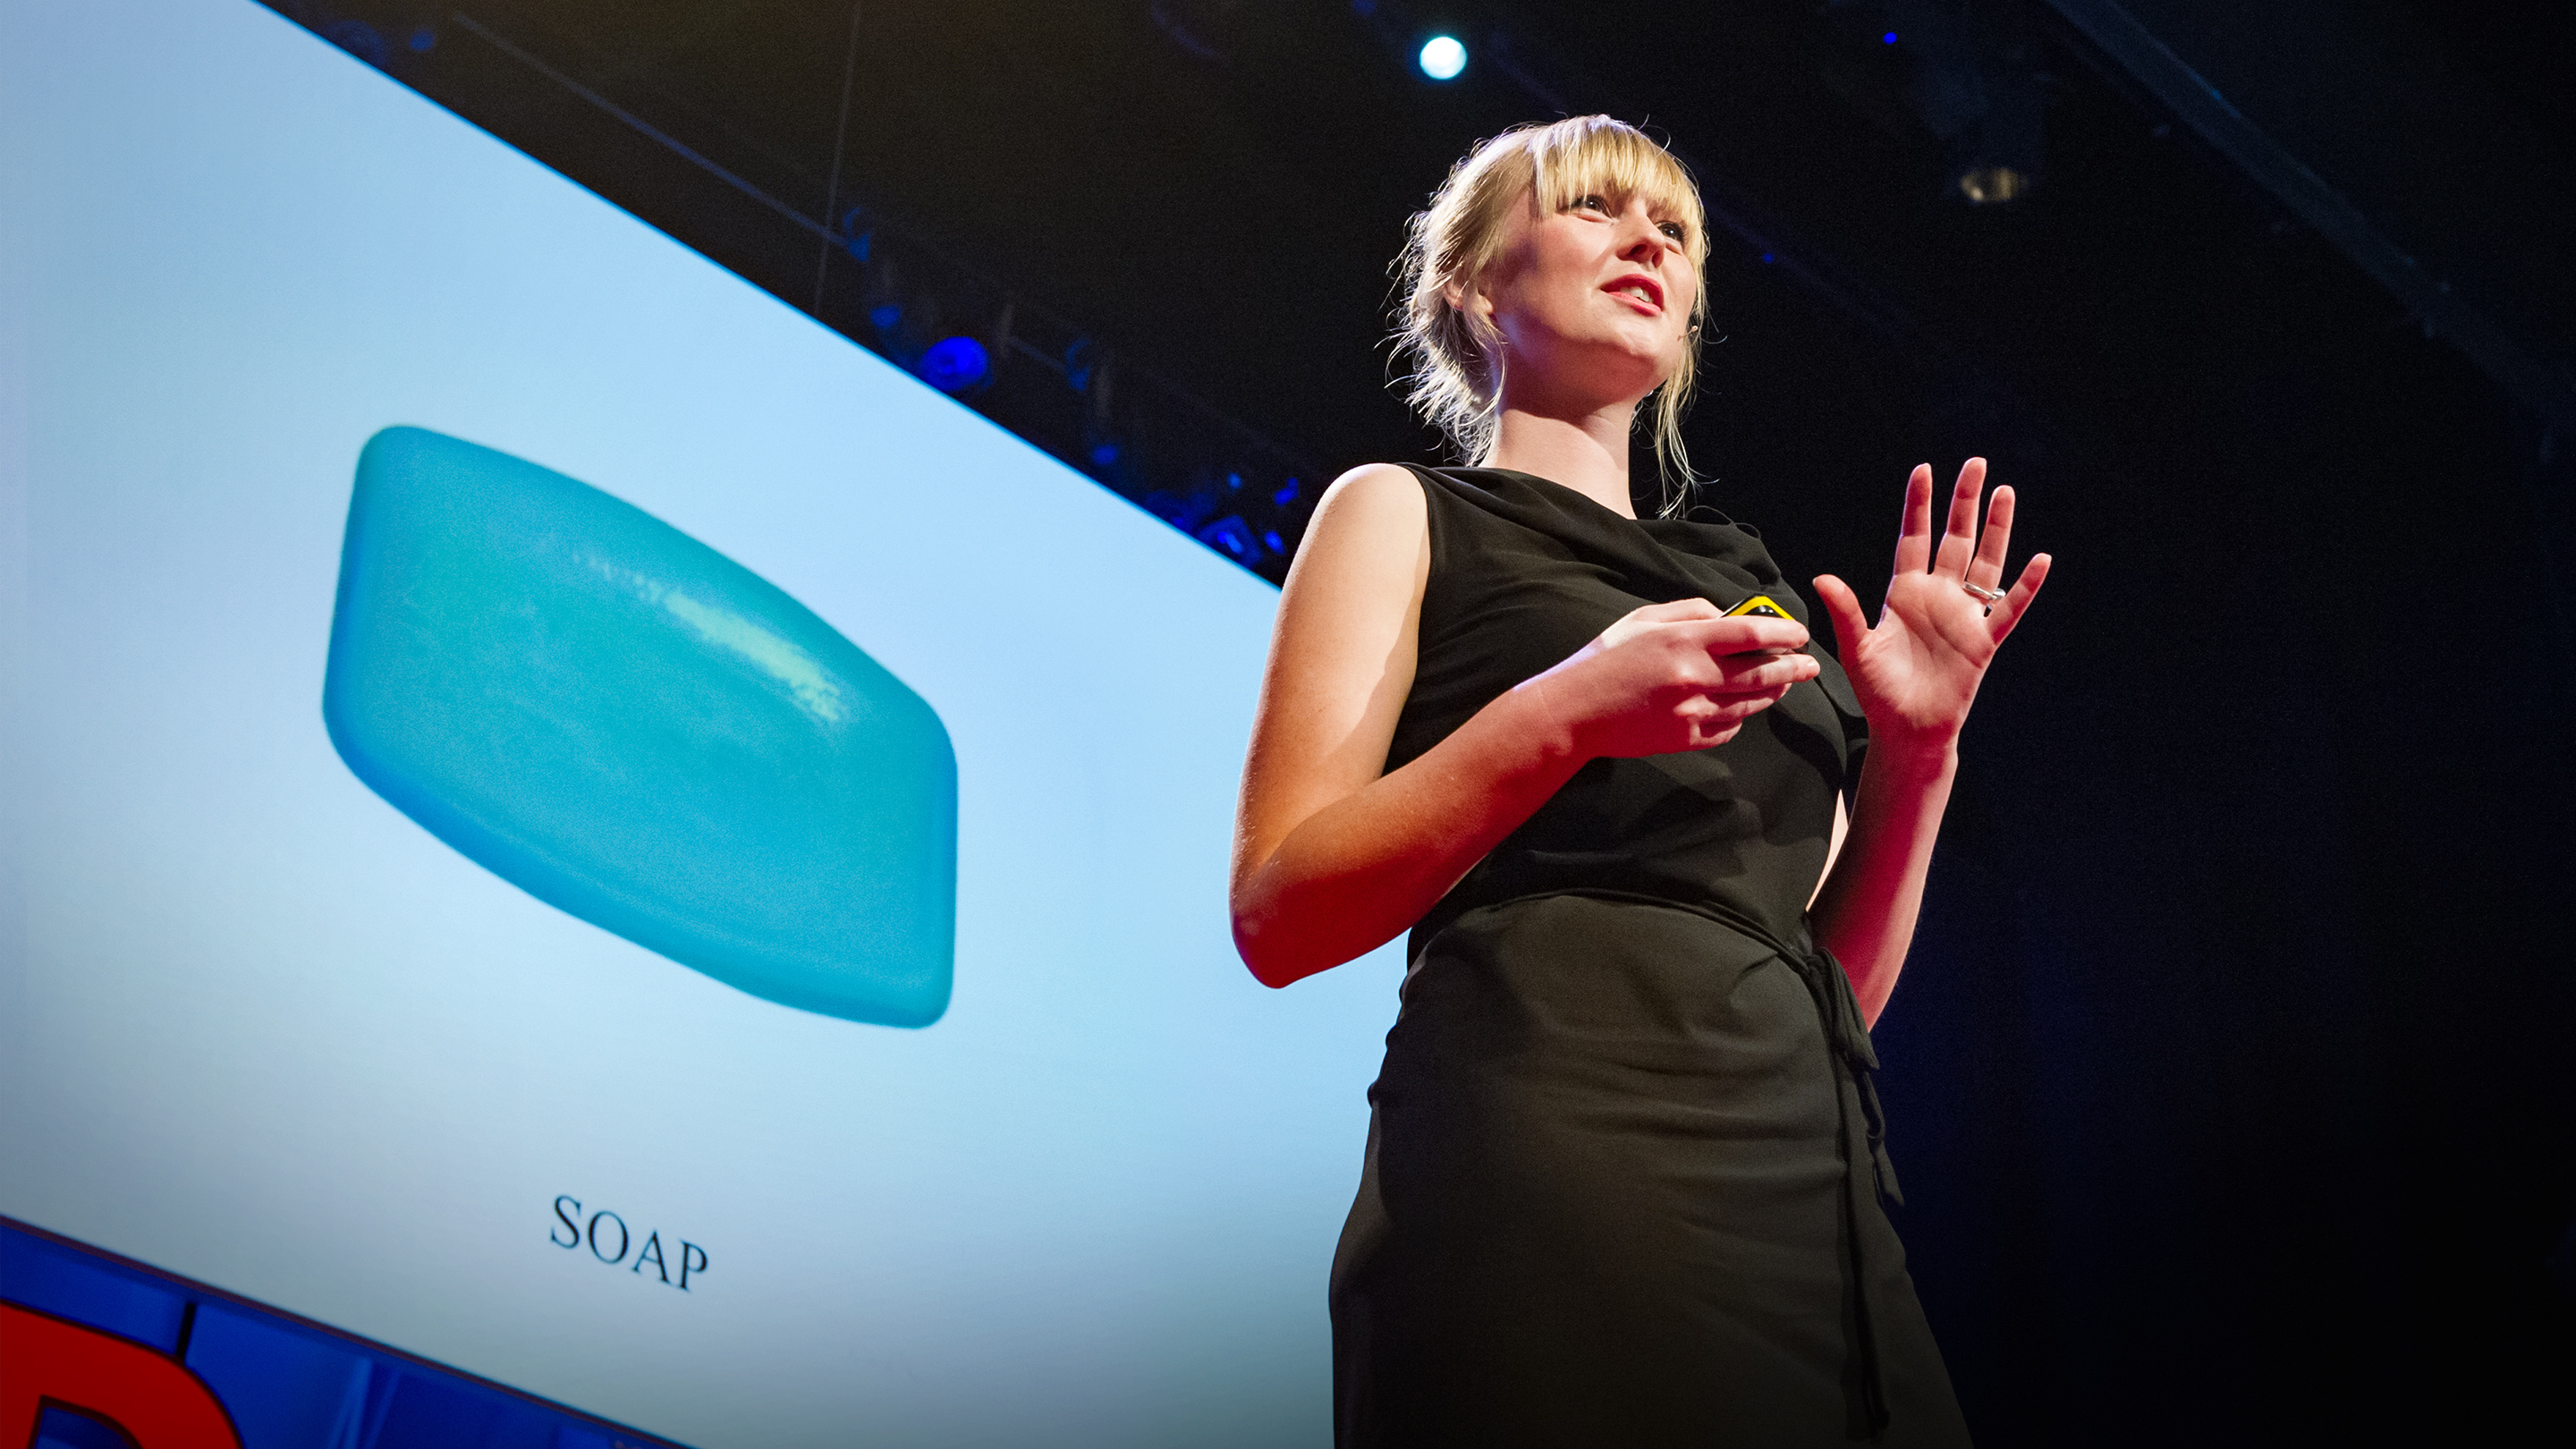 Jacy Reese: Why we should end animal agriculture | TED Talk